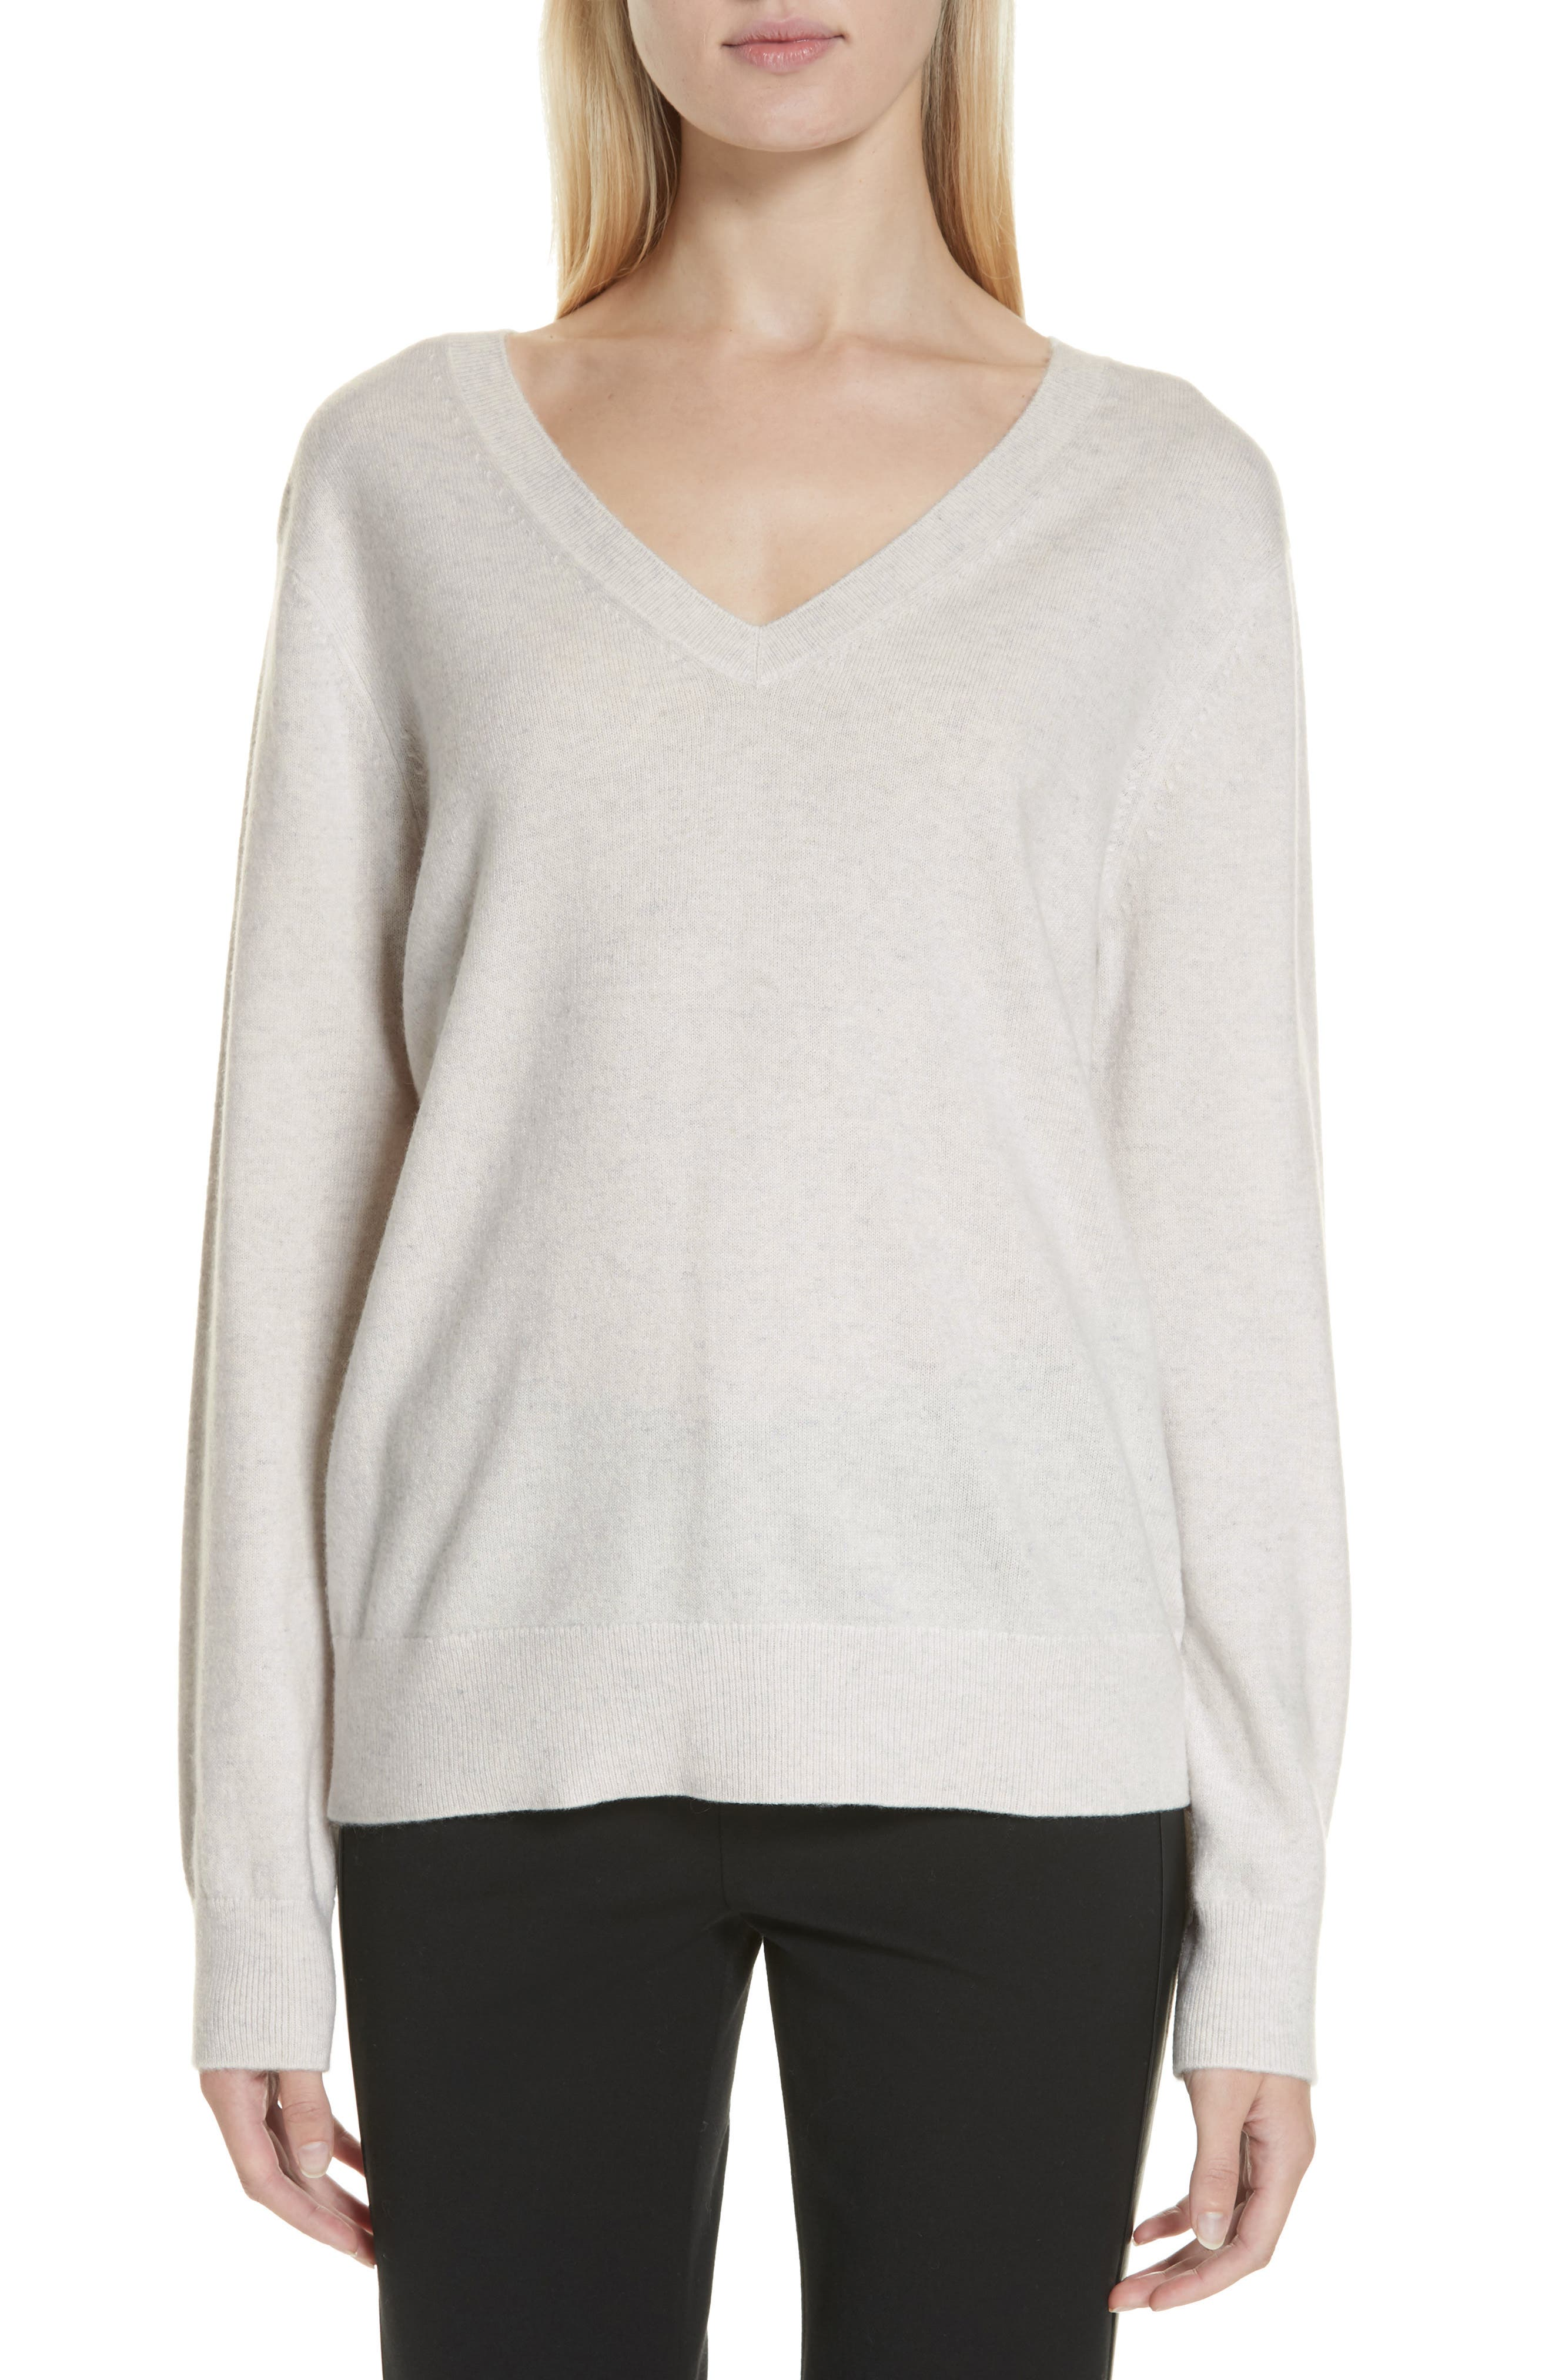 VINCE, Weekend V-Neck Cashmere Sweater, Main thumbnail 1, color, HEATHER WHITE